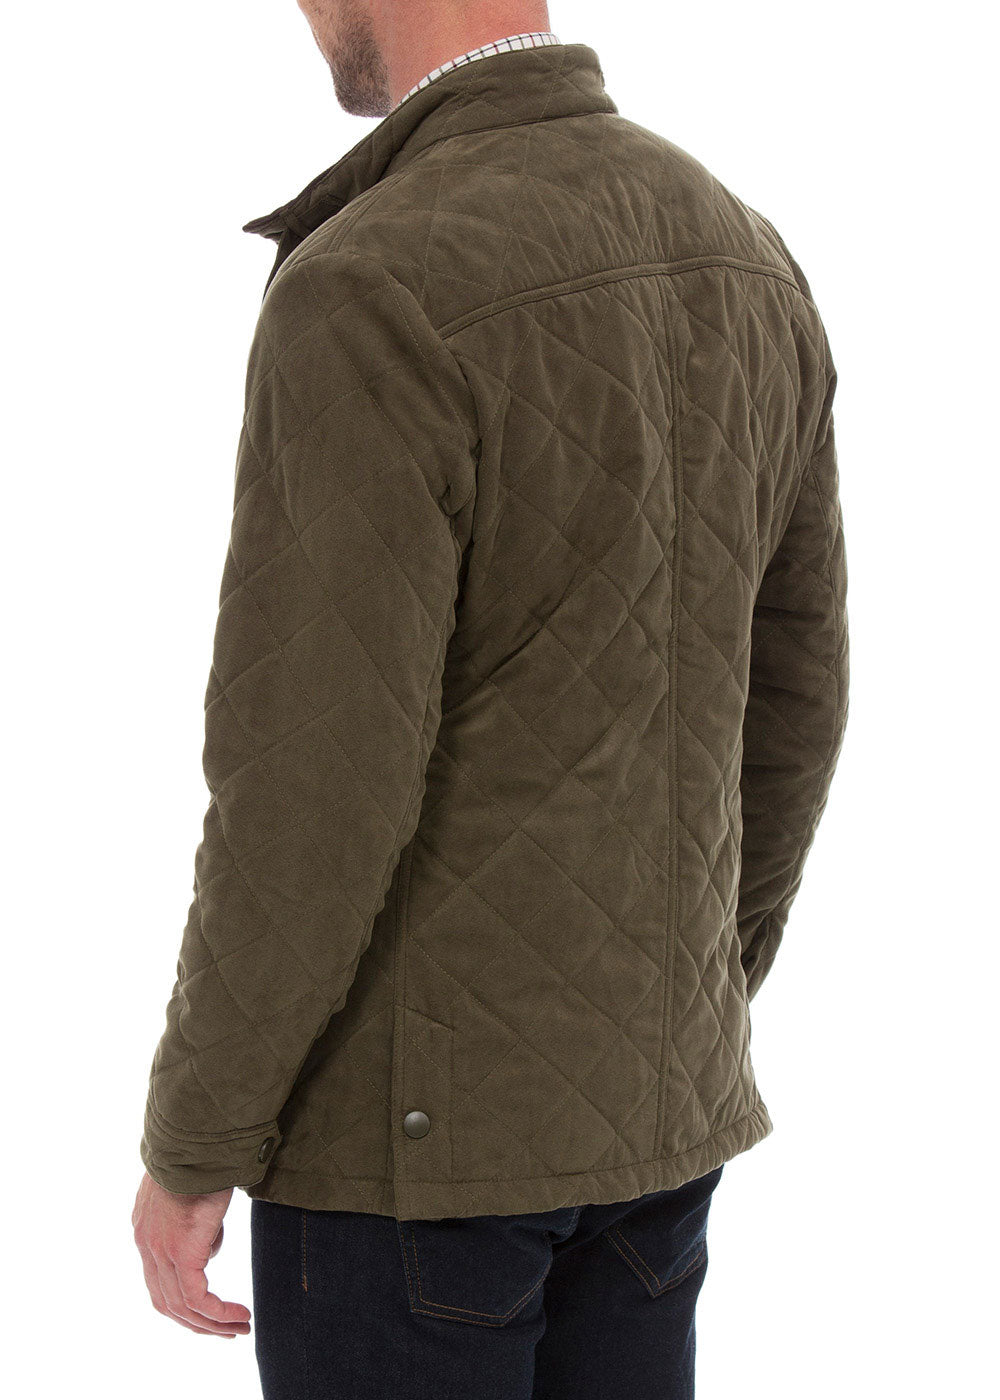 Back view felwell country jacket